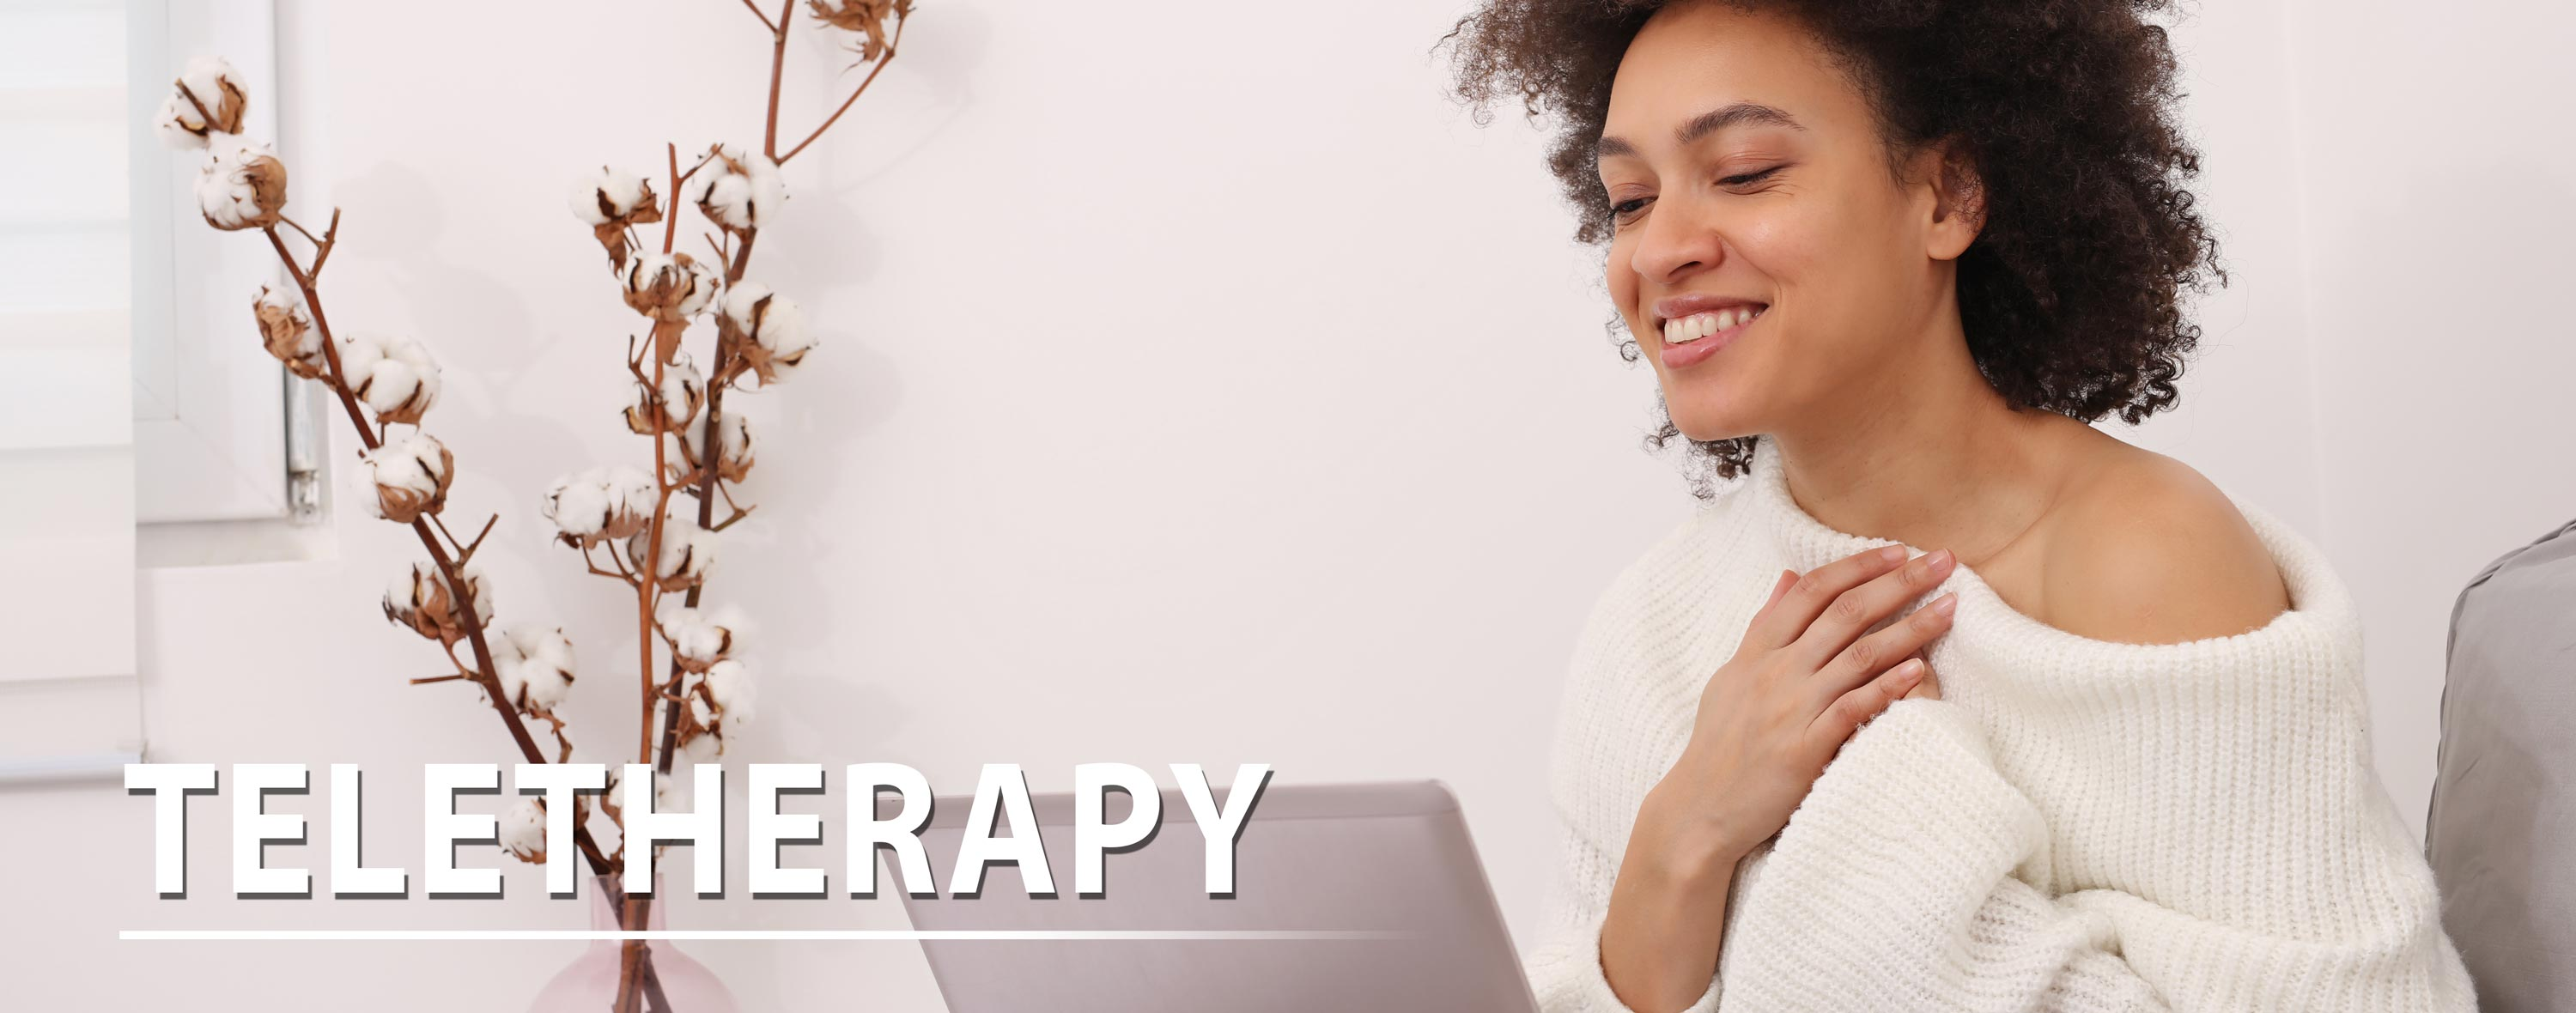 MFT Center Teletherapy image.